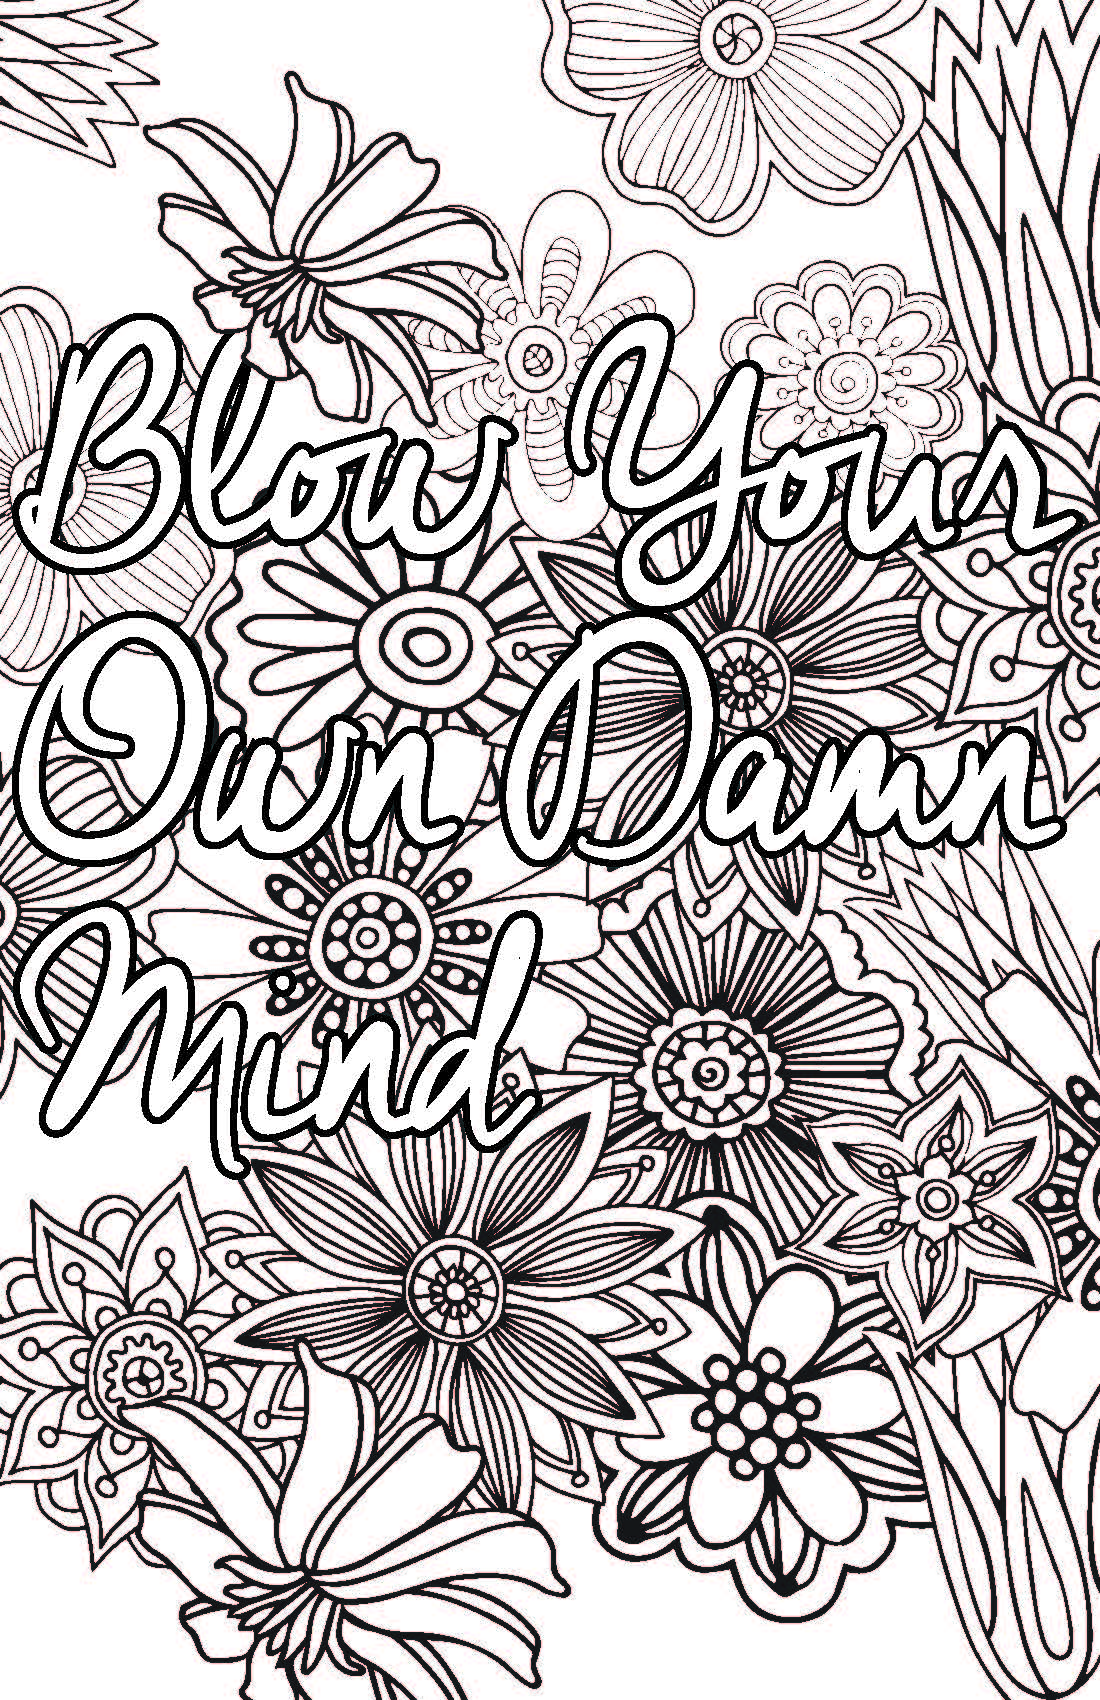 1100x1700 Adult Coloring Pages That Say Exactly What You Need To Hear